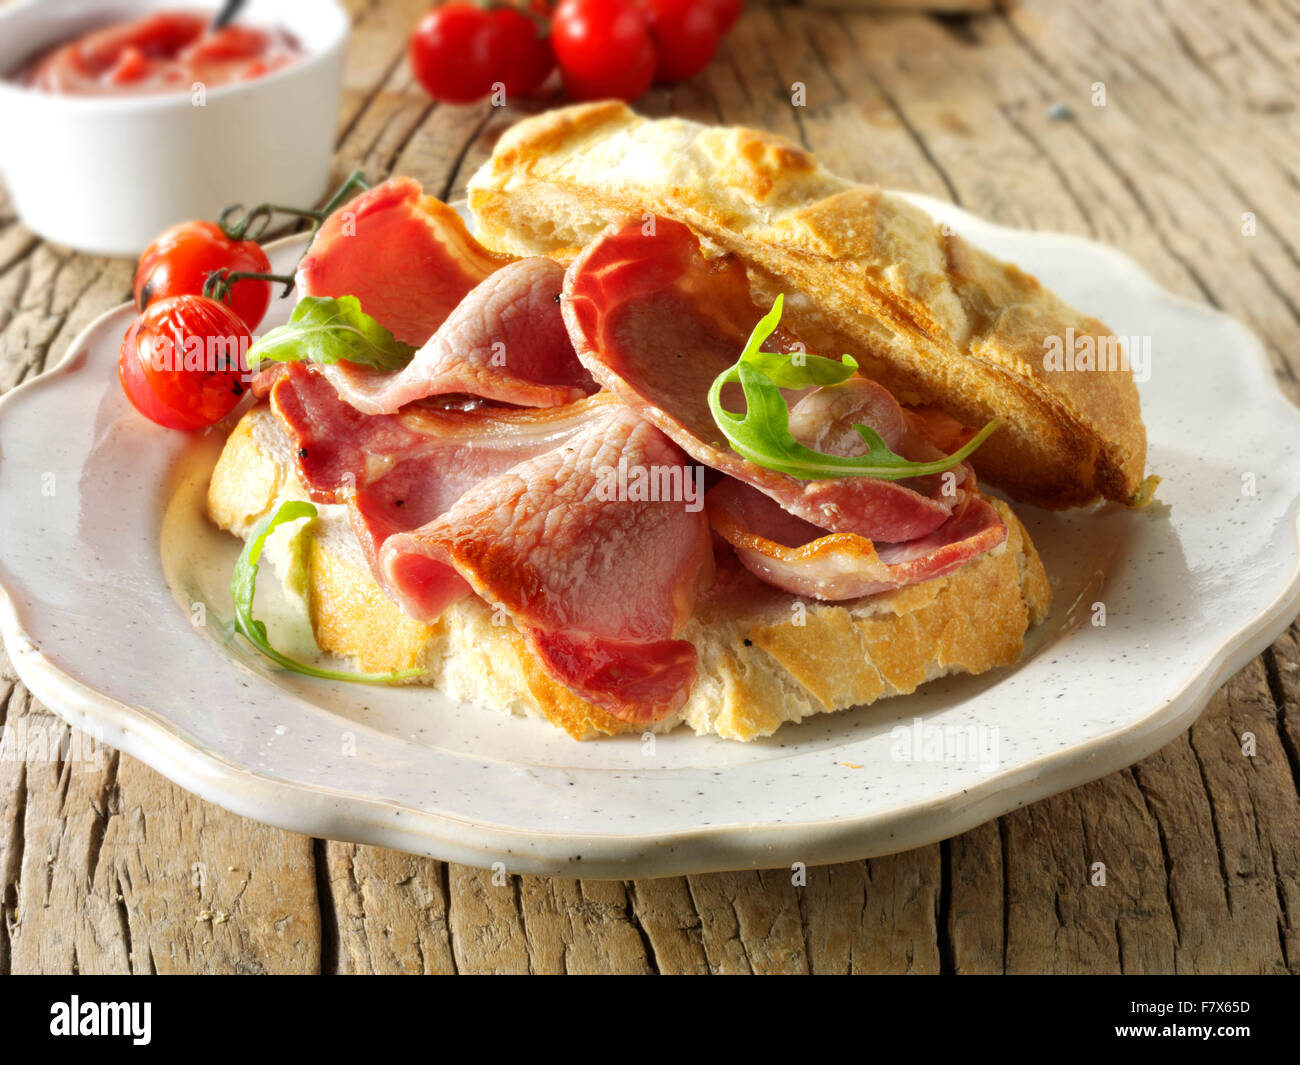 Prepared bacon toasted sandwich in white bread on a plate - Stock Image